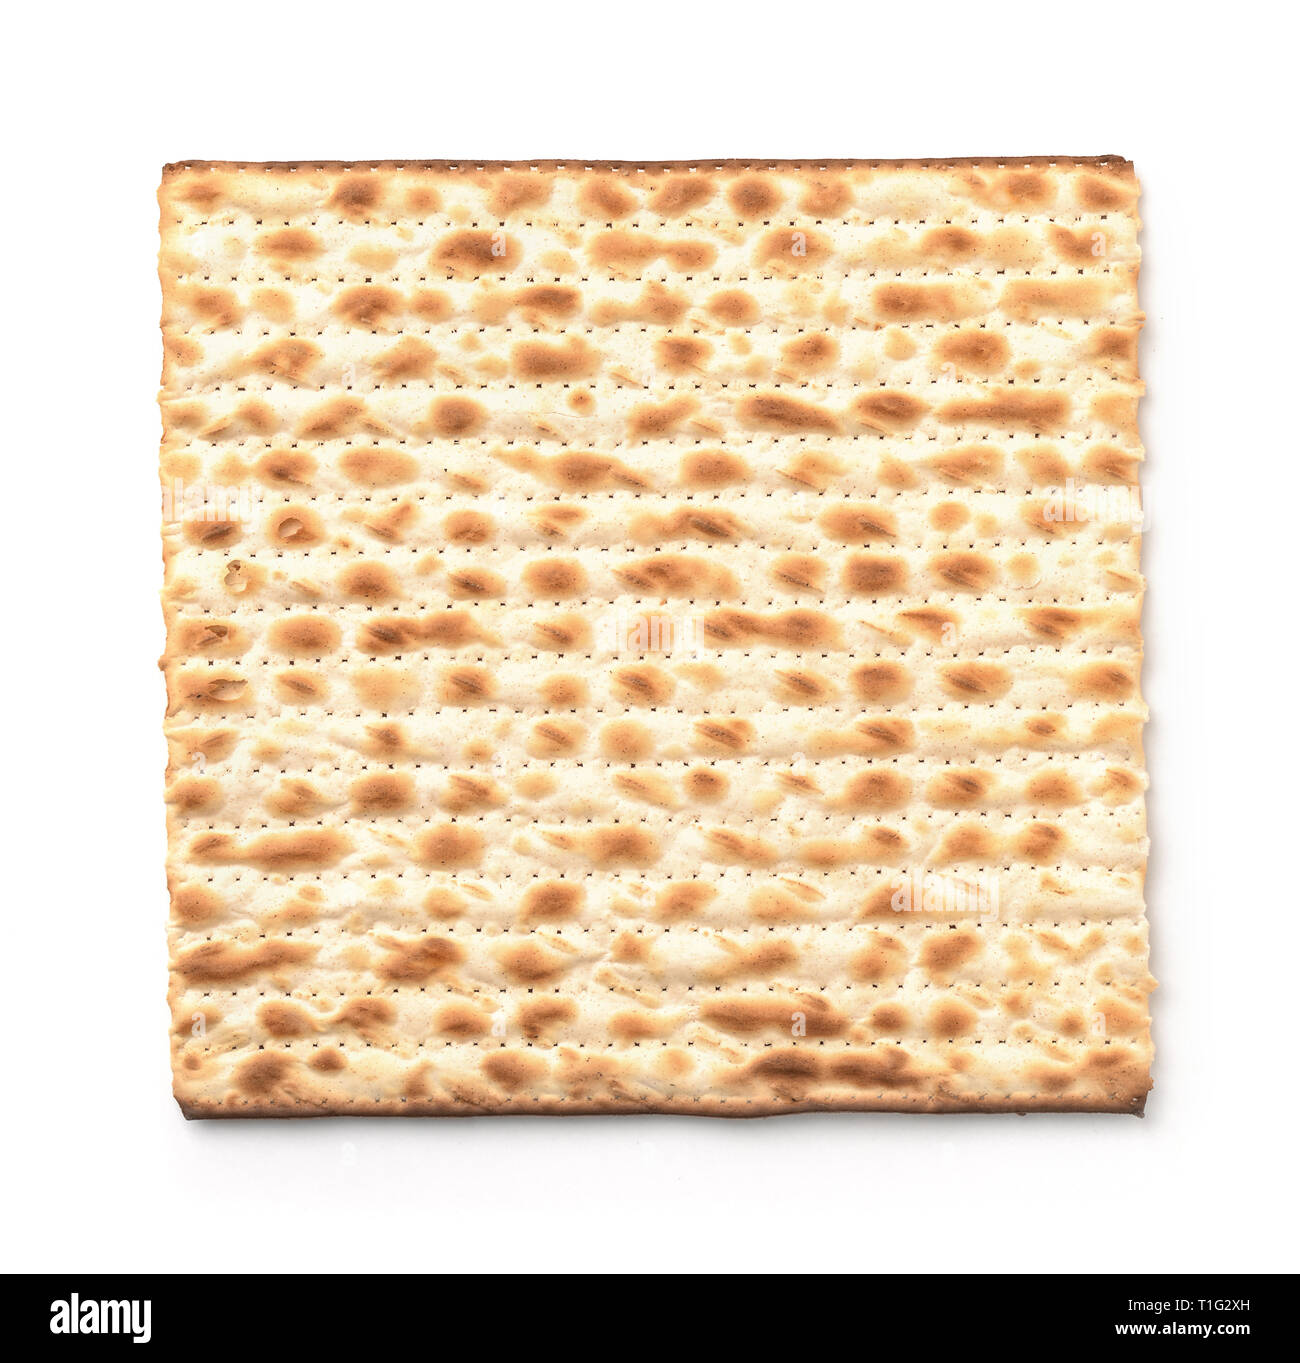 Top view of flatbread matzo isolated on white - Stock Image